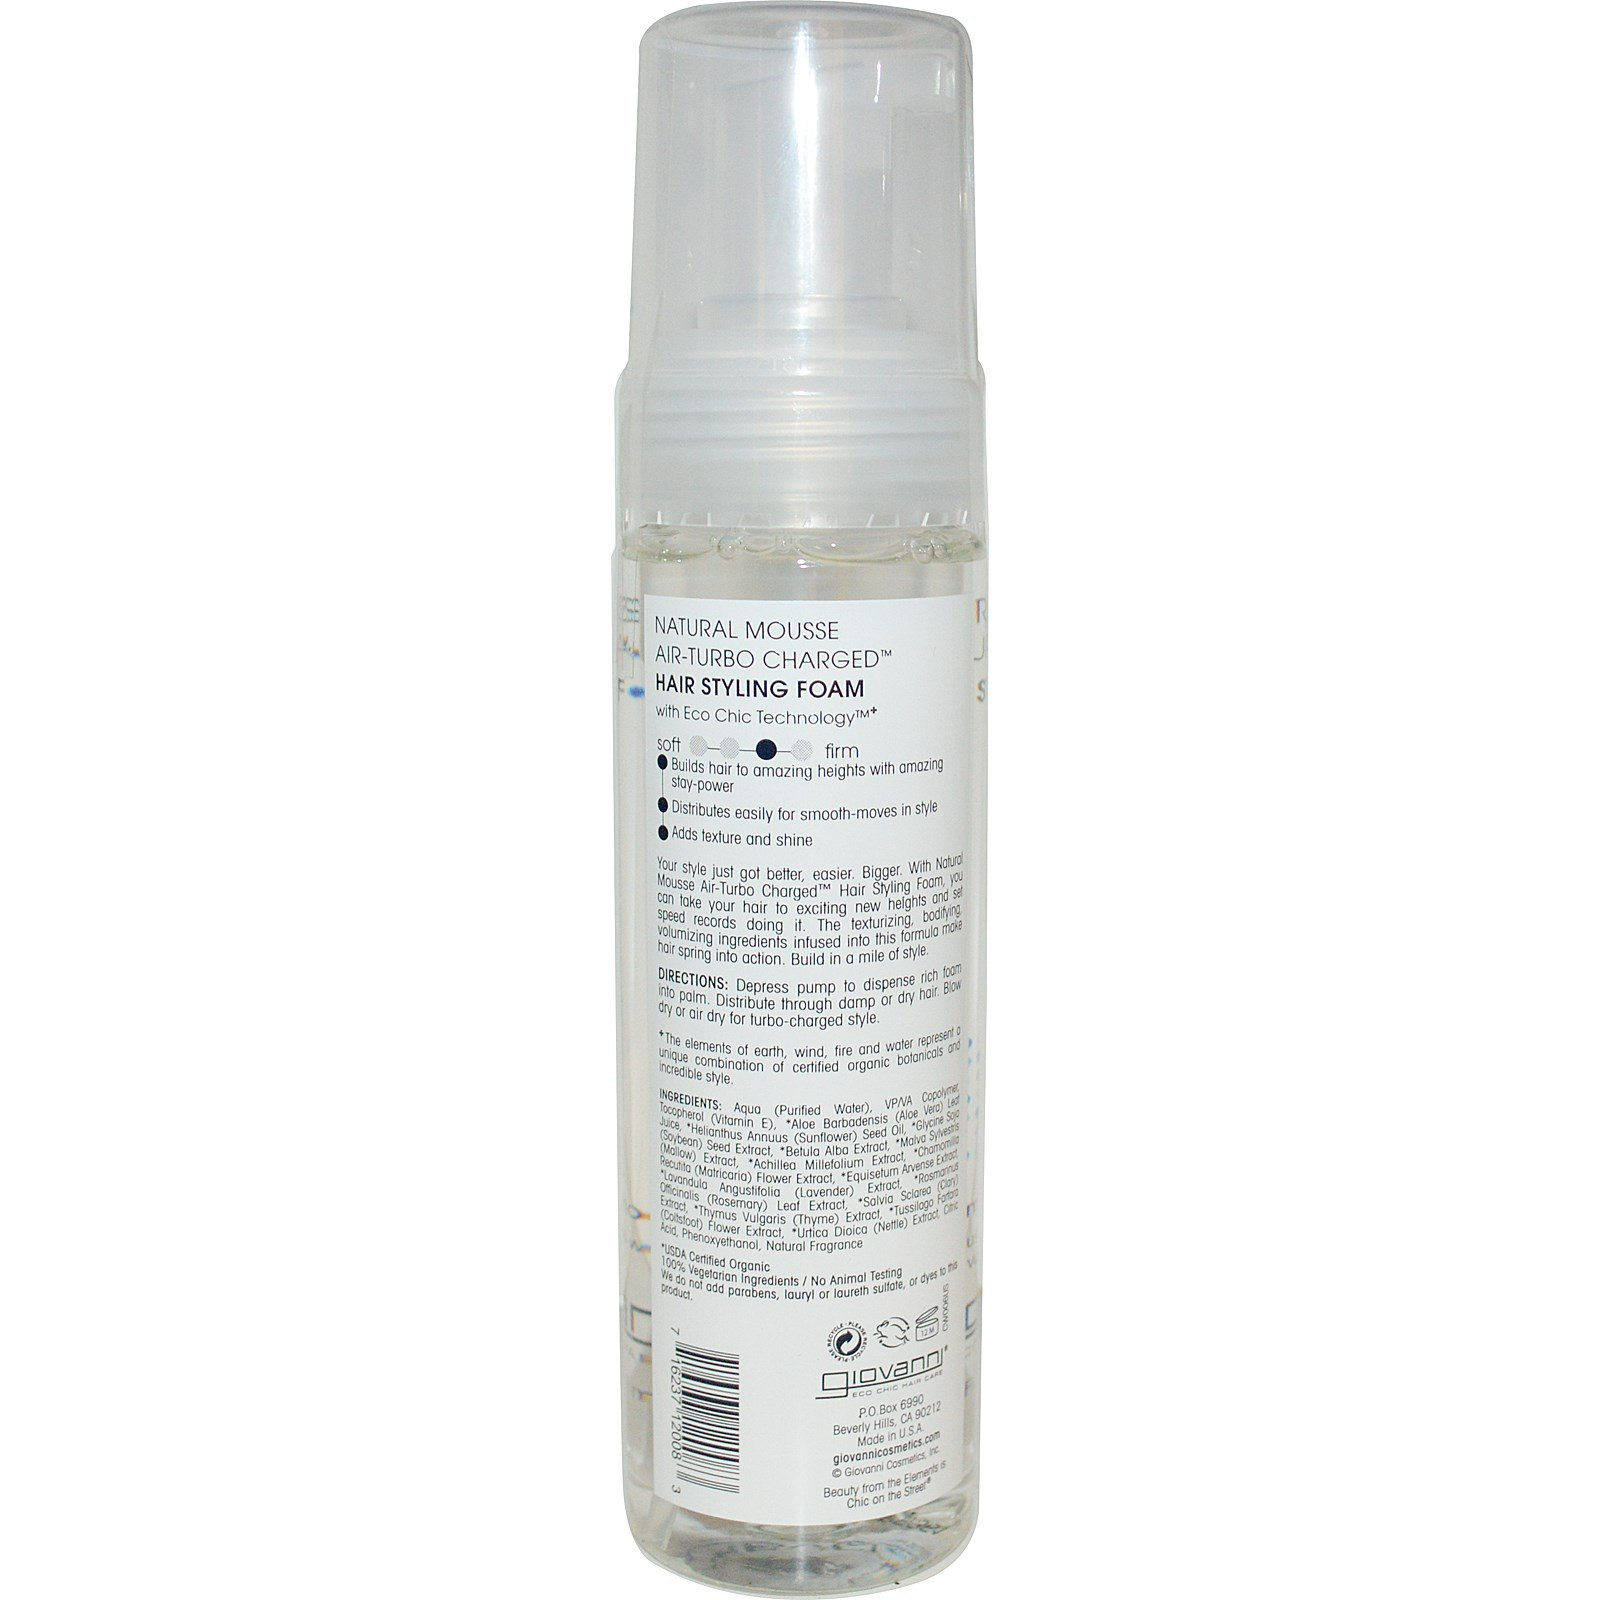 Hair Styling Foam Fair Giovanni Natural Mousse Airturbo Charged Hair Styling Foam 7 .